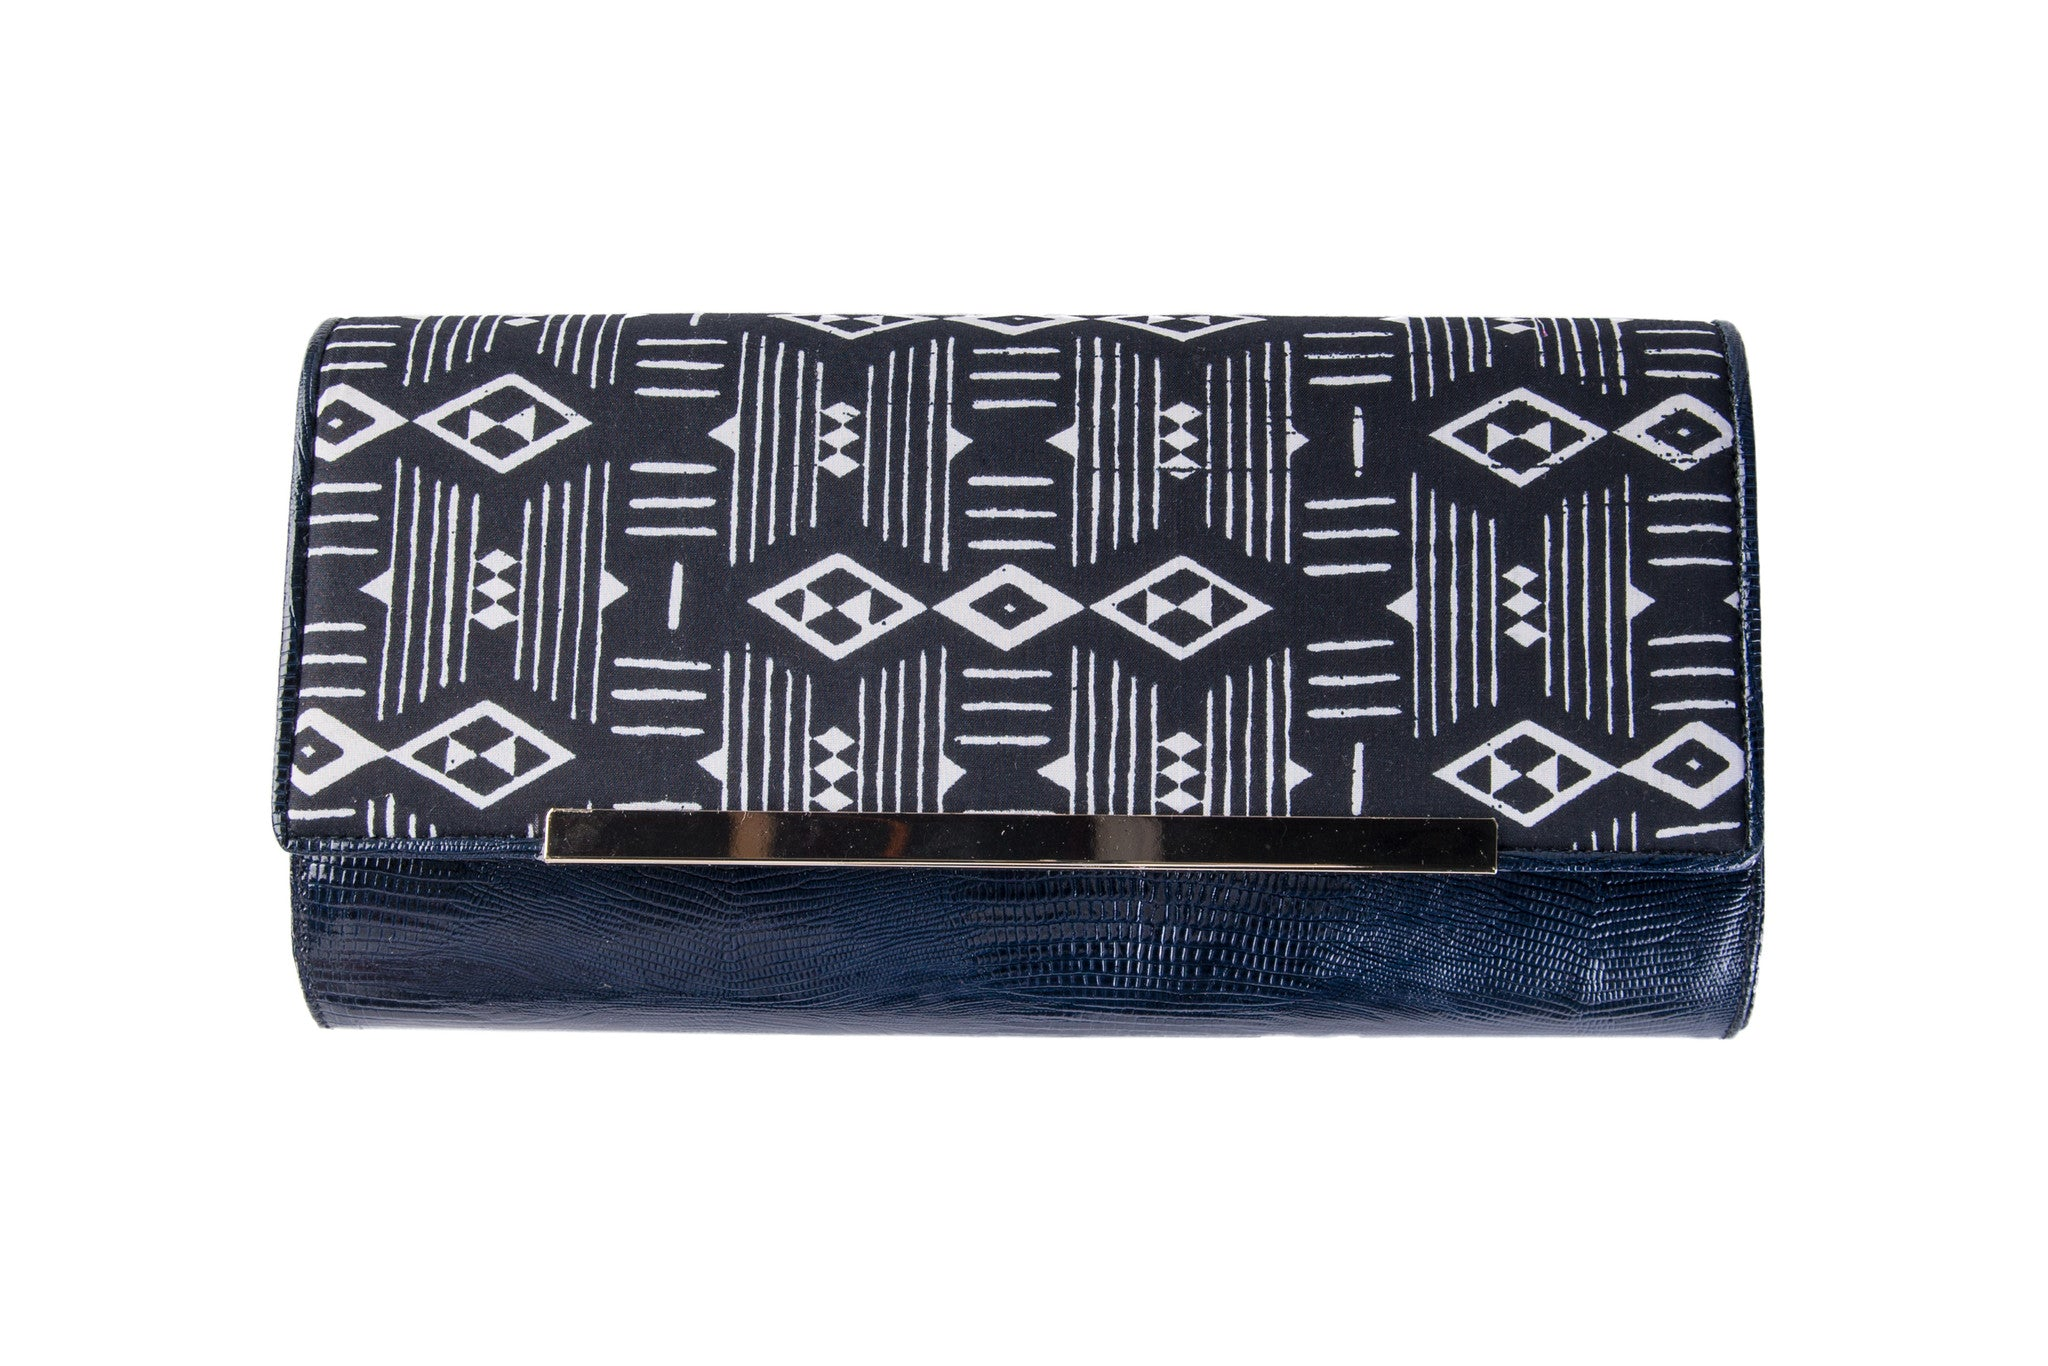 Black and White embossed lizard clutch